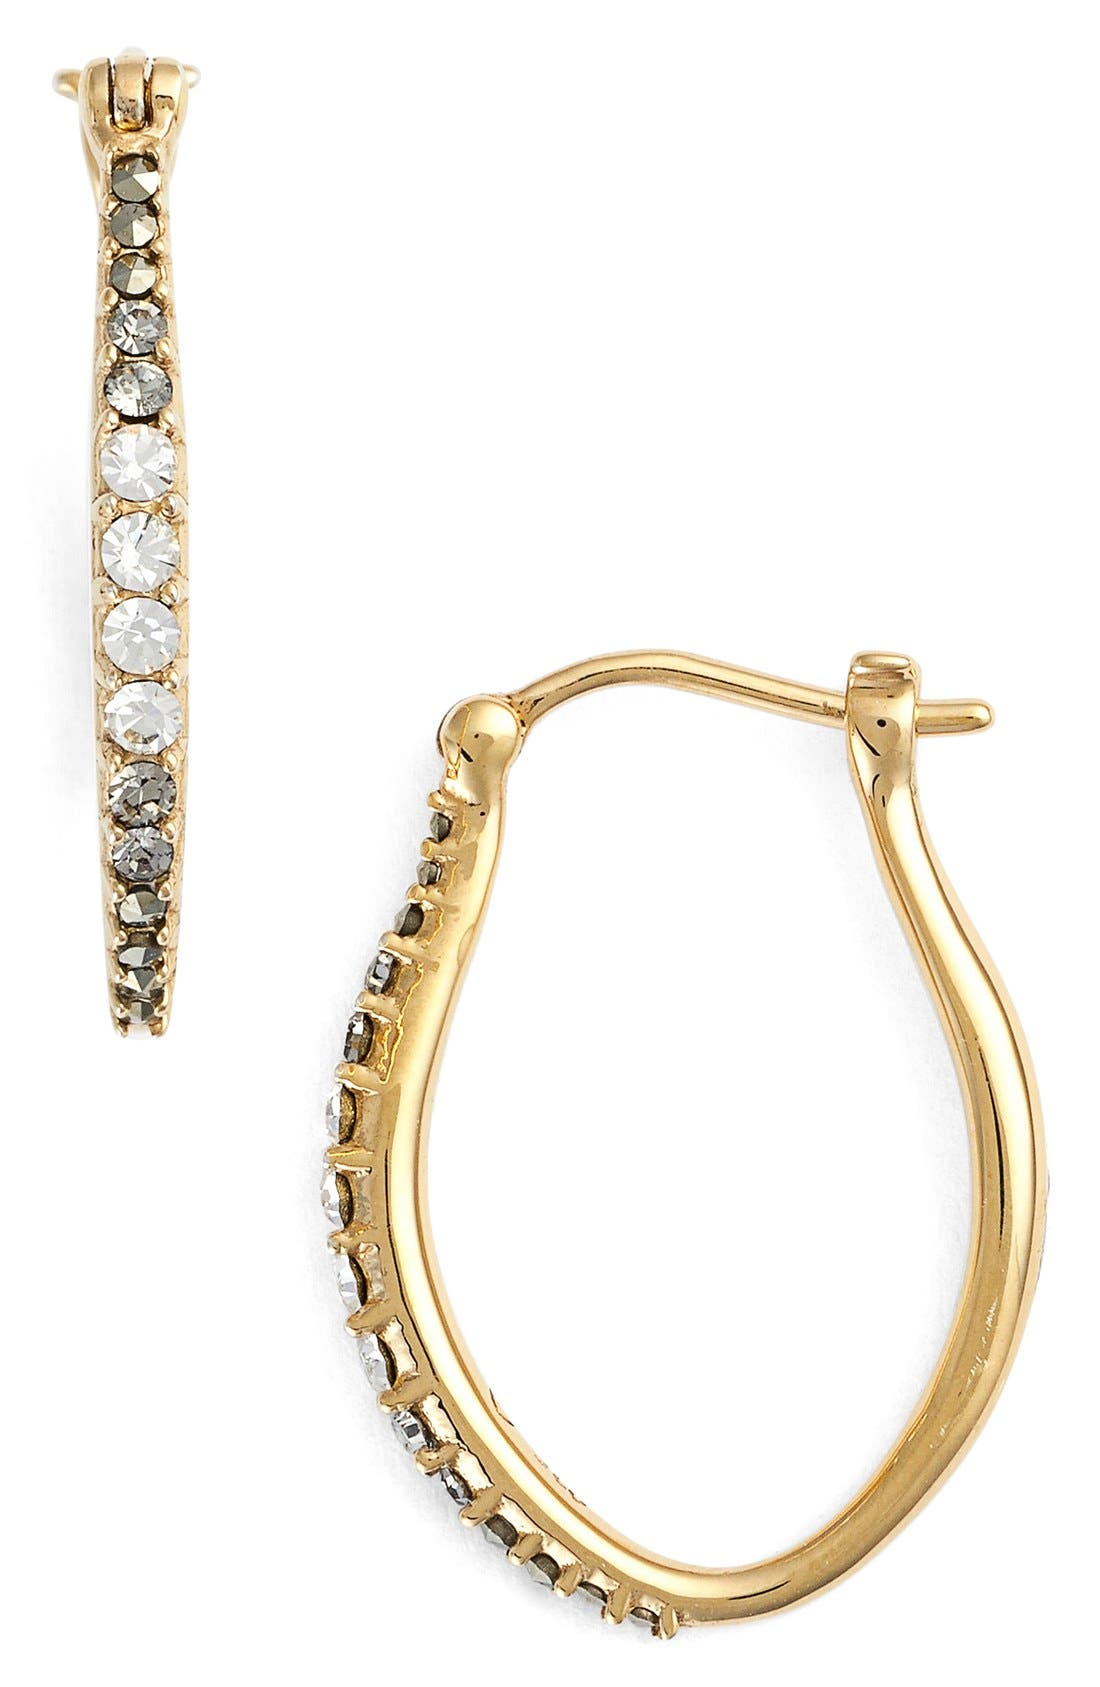 Marcasite & Swarovski Crystal Hoop Earrings,                         Main,                         color, GOLD